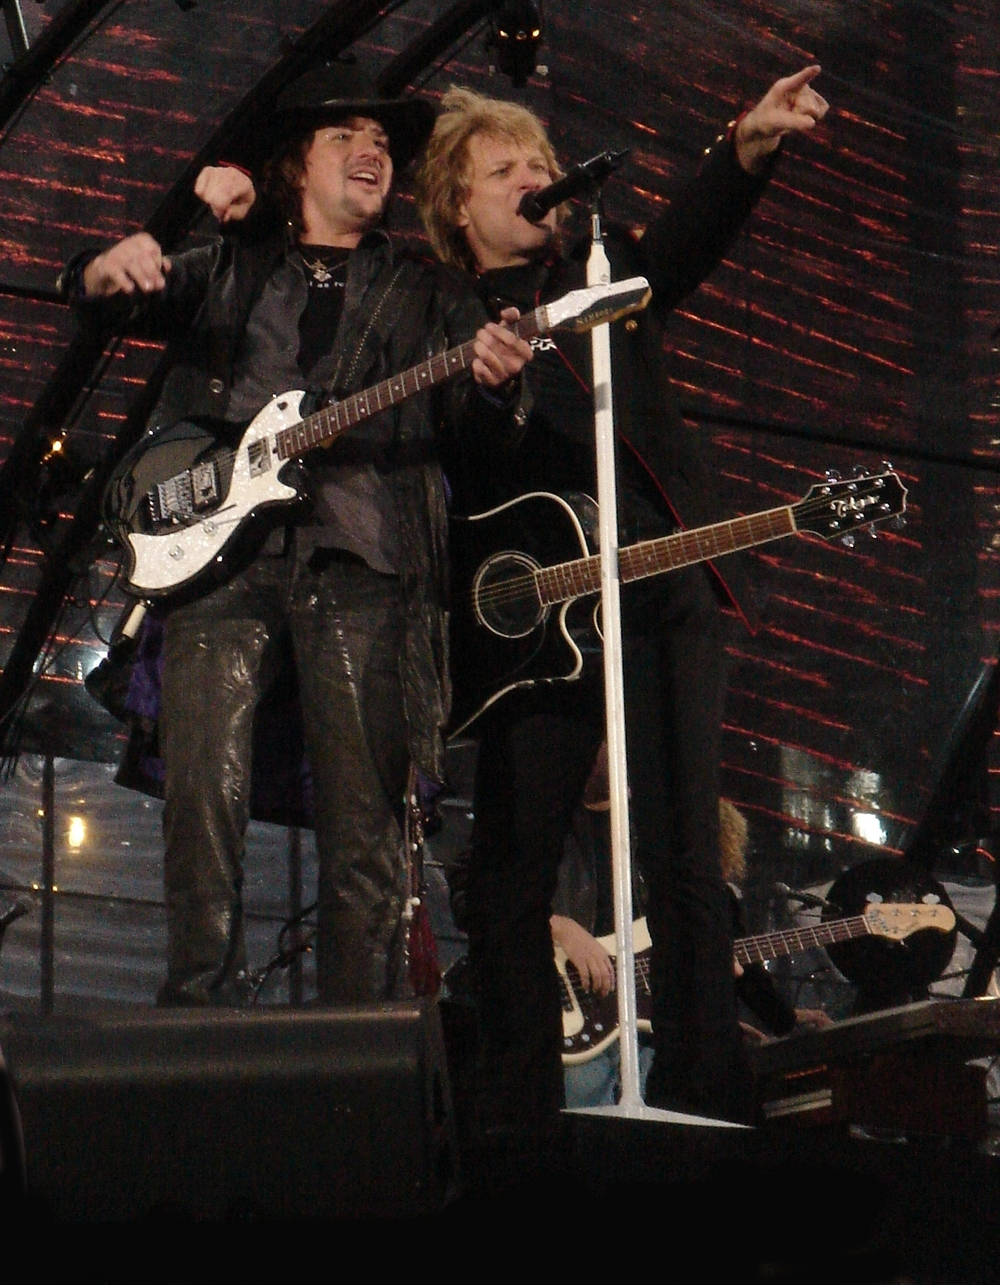 Bon Jovi (pictured) will perform in Israel in October. Credit: Wikimedia Commons.